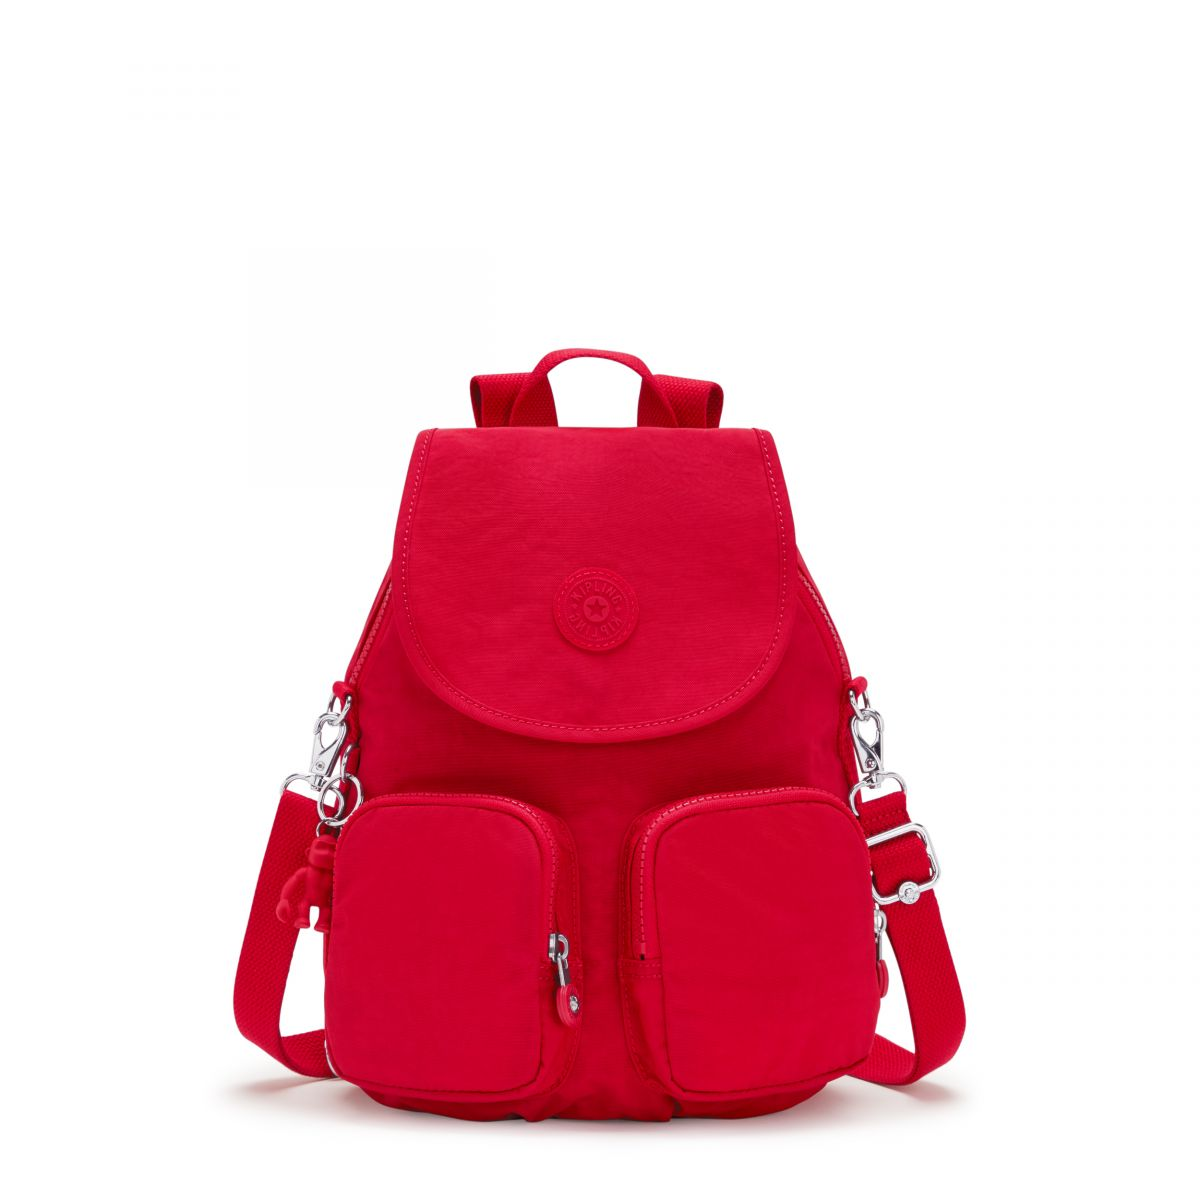 FIREFLY UP BACKPACKS by Kipling - Front view